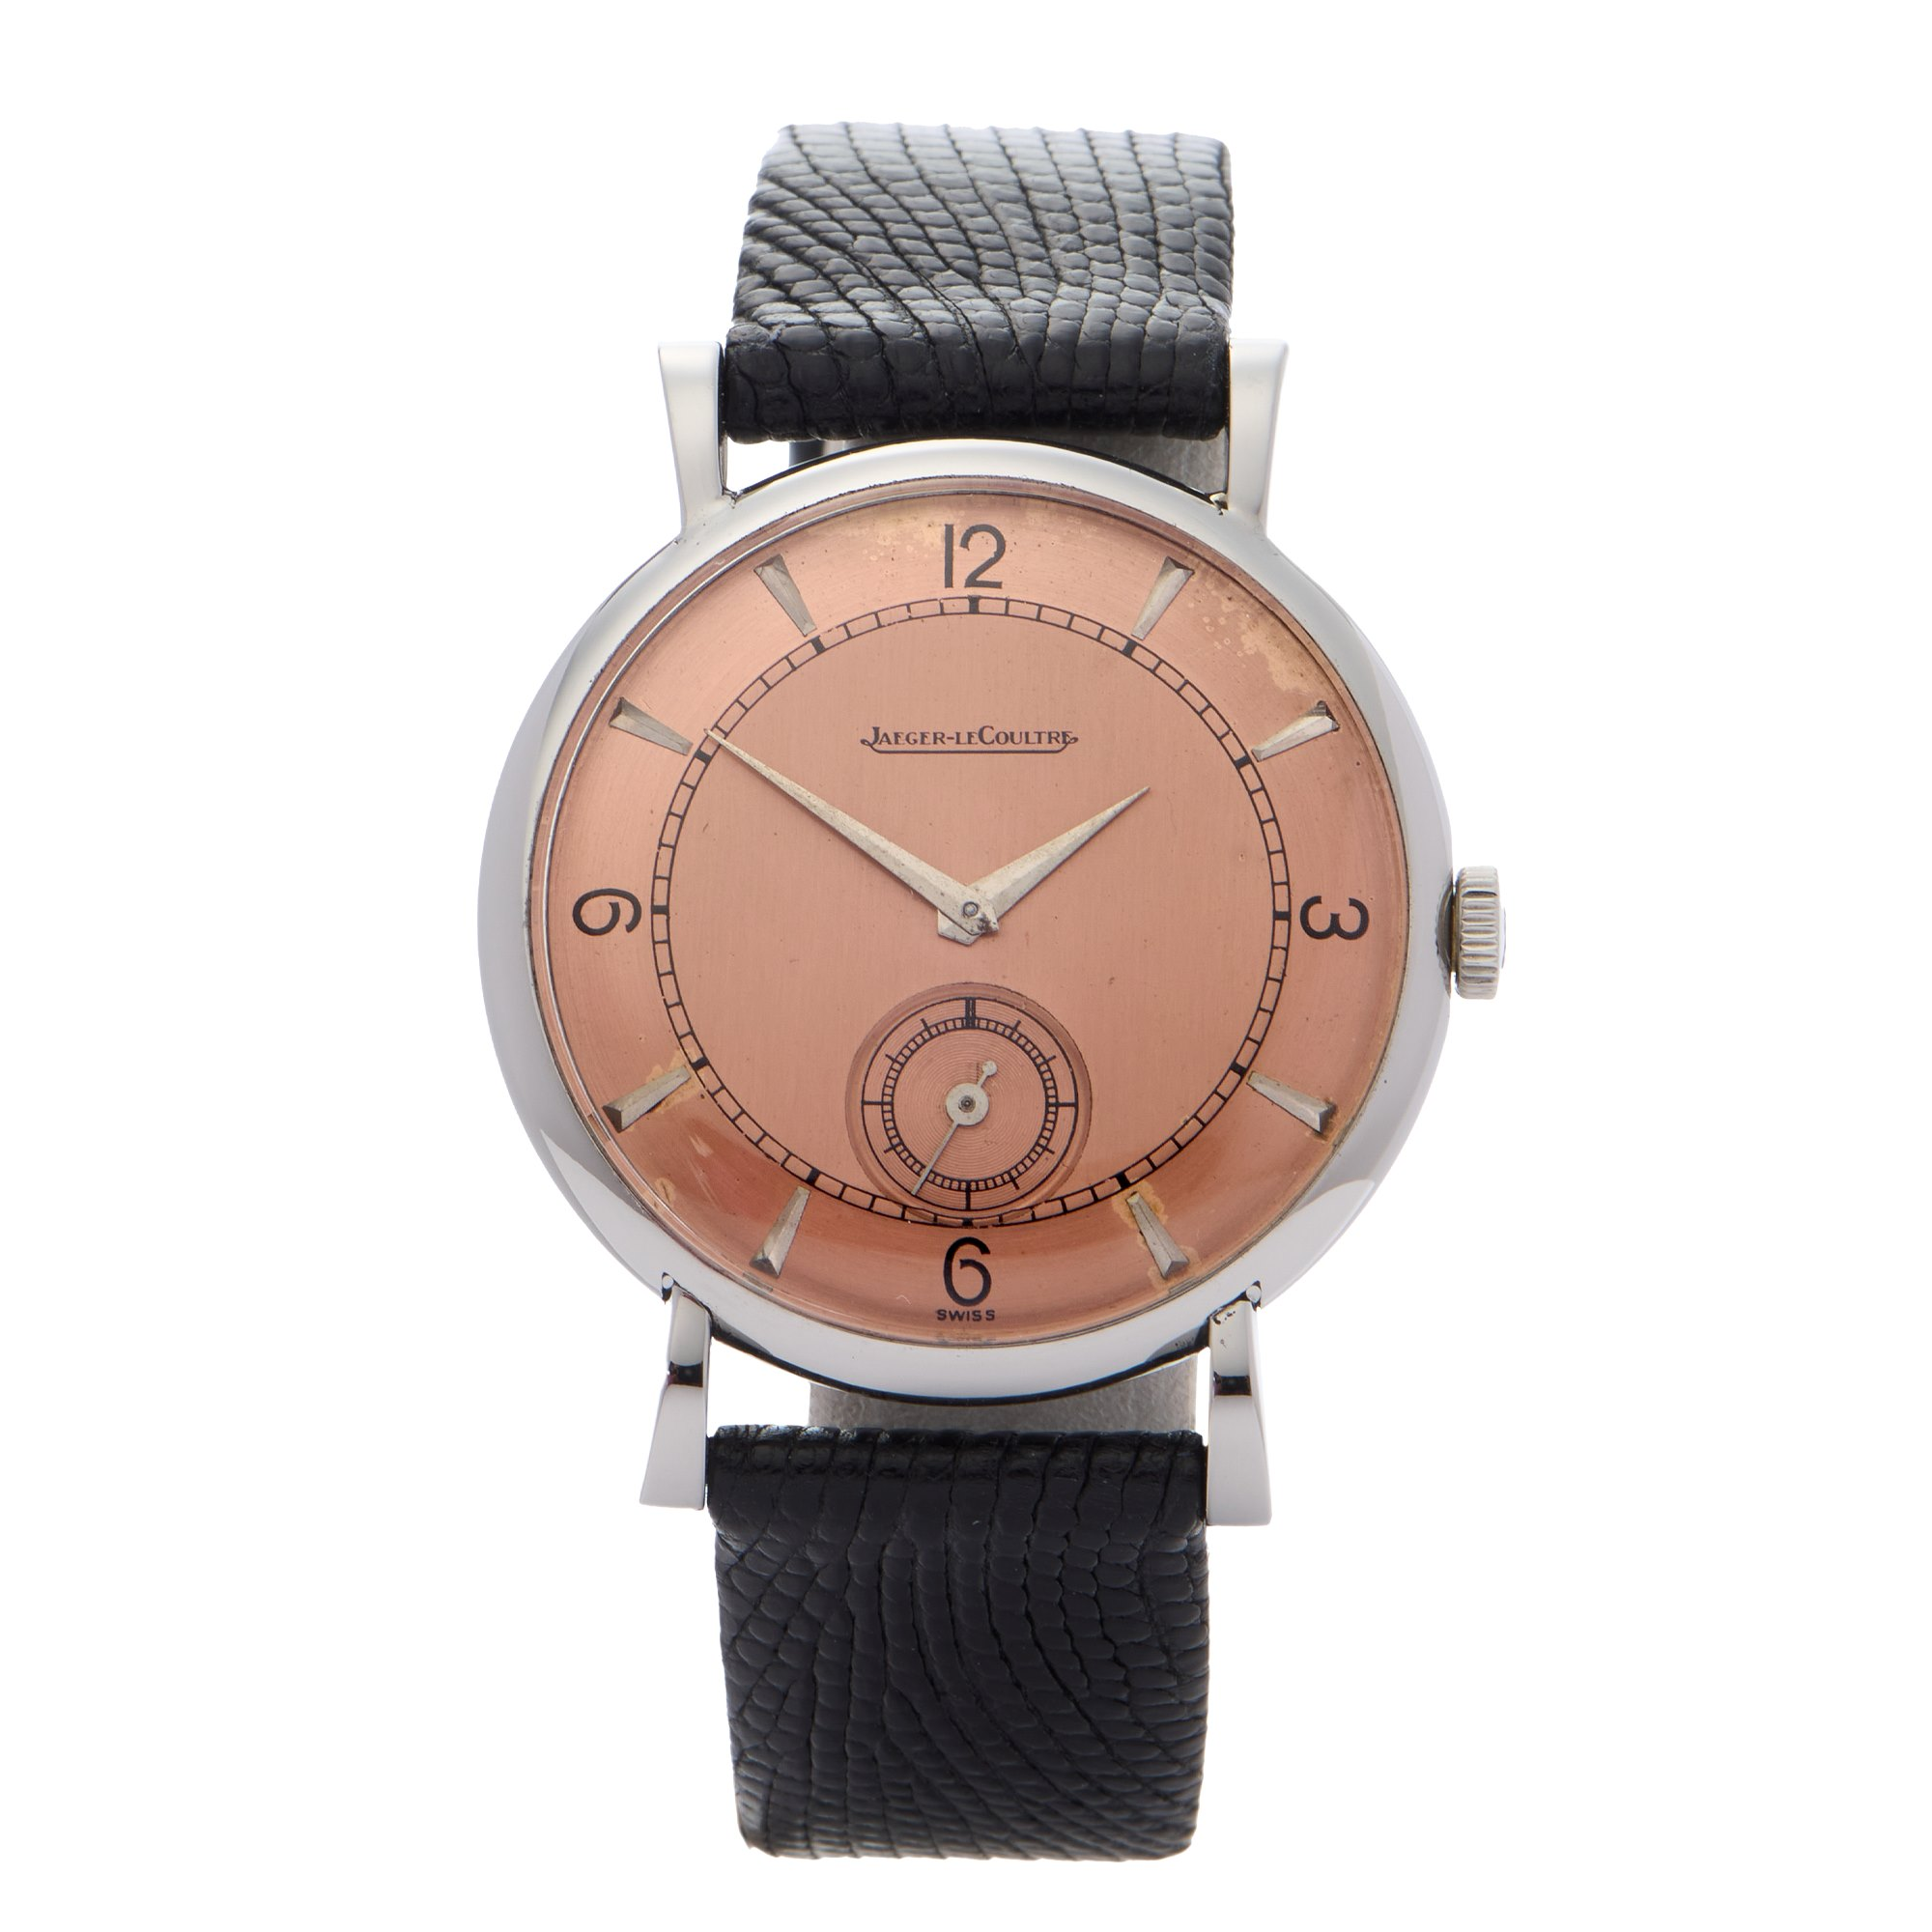 Jaeger-LeCoultre Vintage Stainless Steel 428